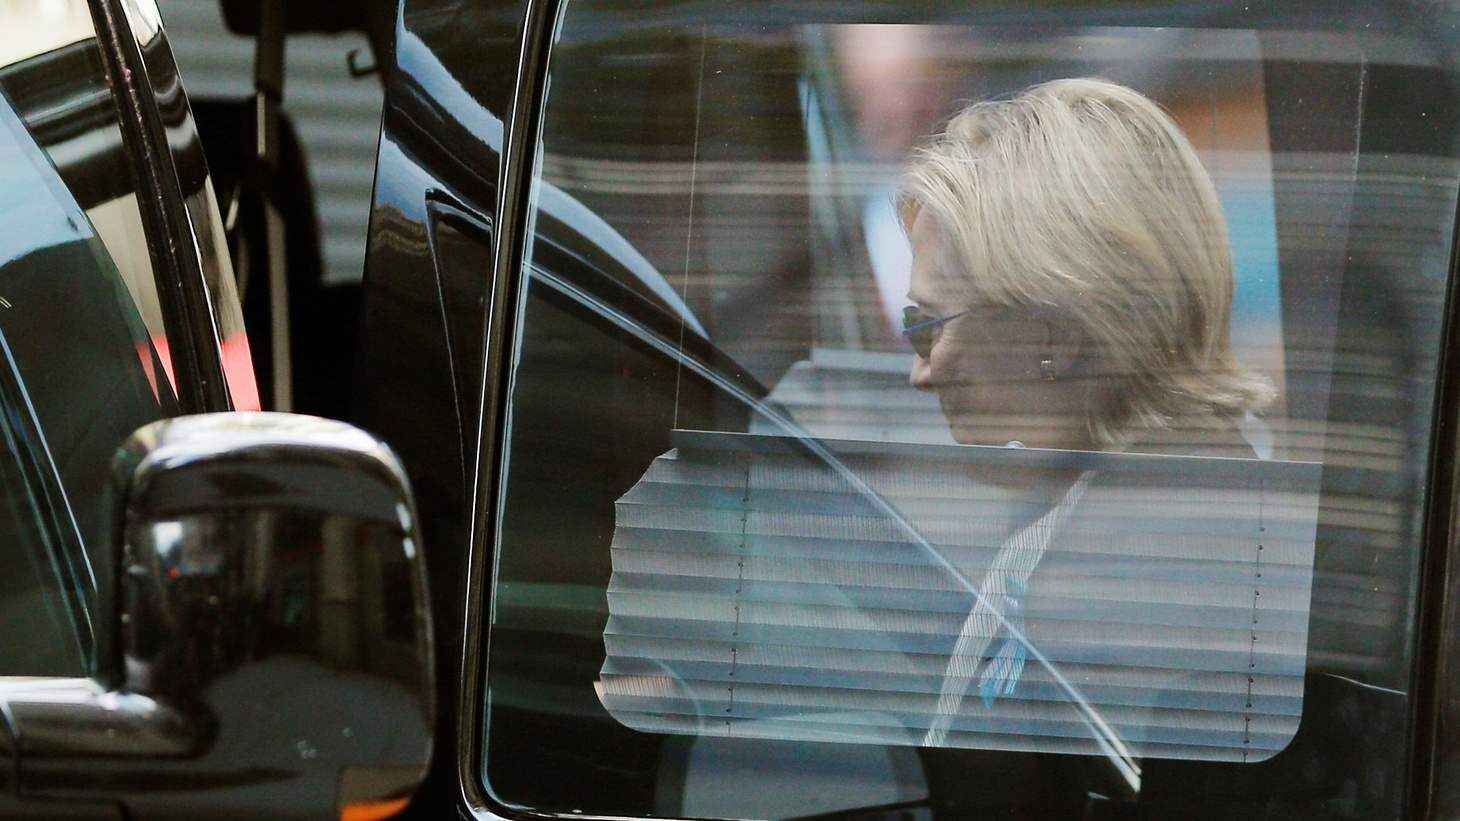 Hillary Clinton's being criticized for not initially disclosing a pneumonia diagnosis and her opponents say her illness is proof she's not up to the task of being president. Of course presidents get sick like the rest of us; but in the past, the public was rarely notified.